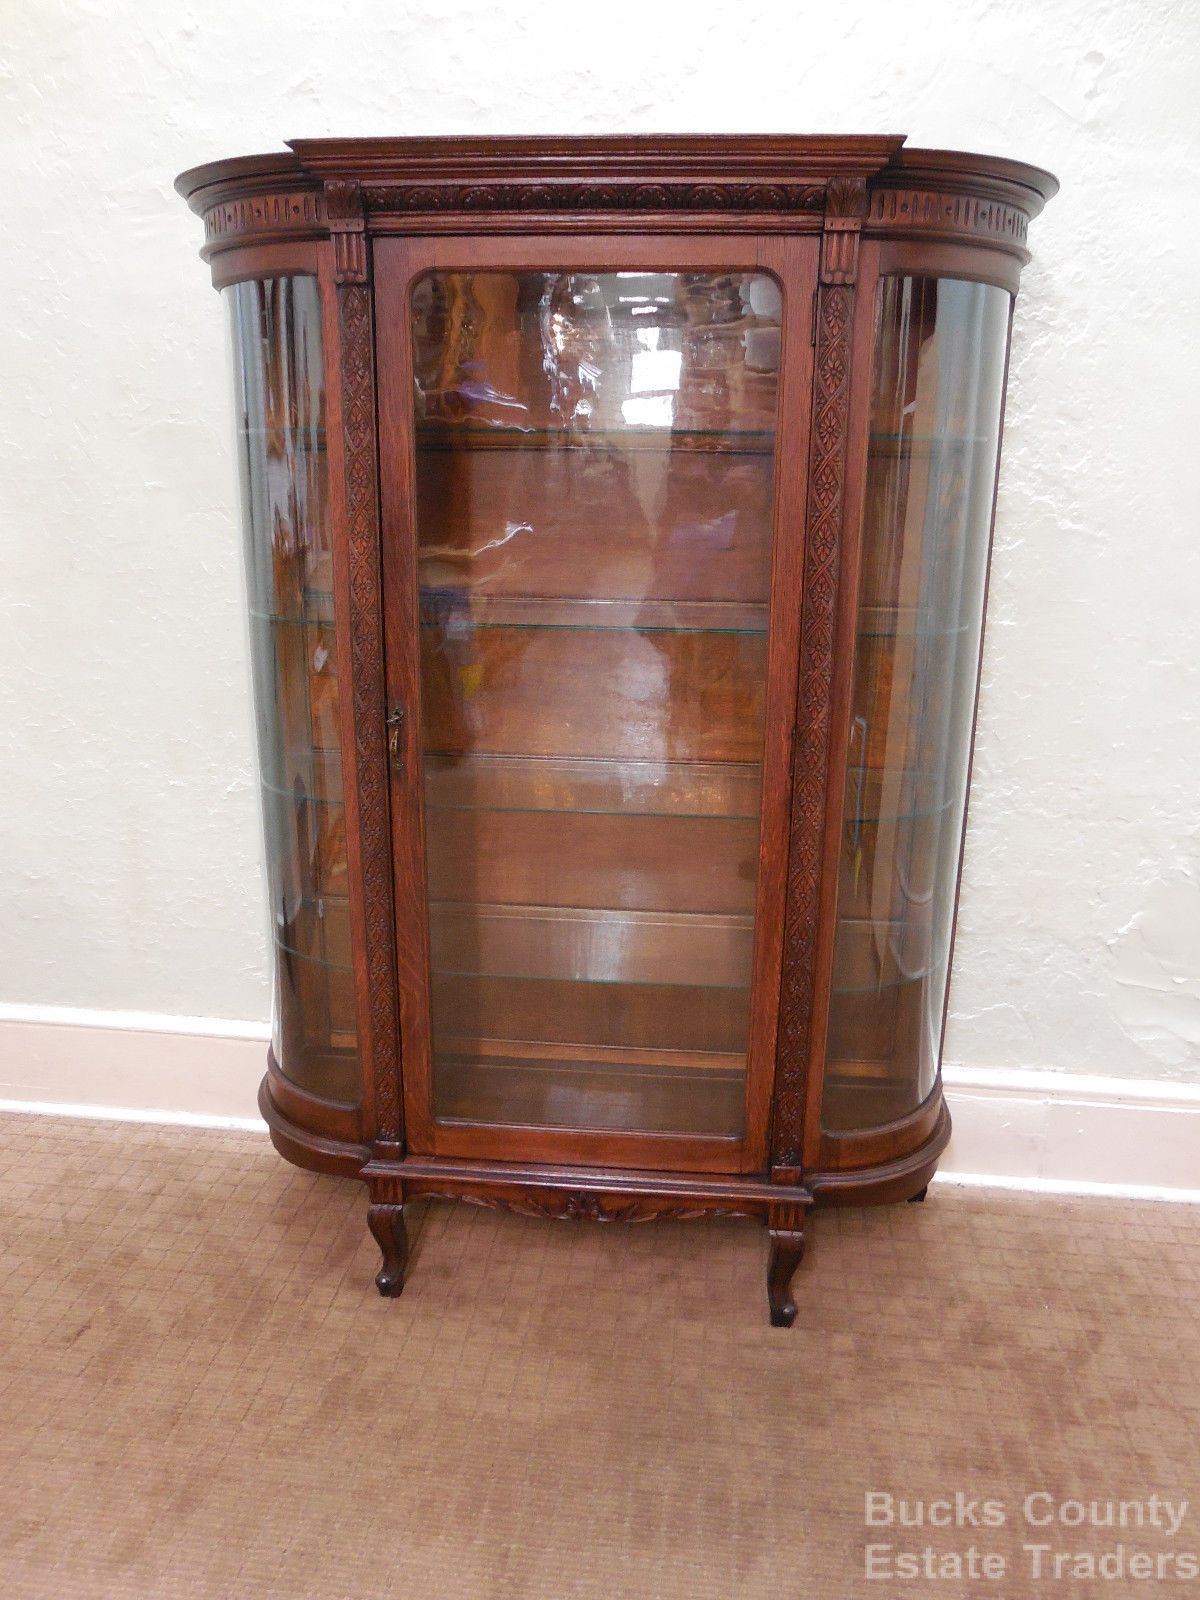 Antique Victorian Oak Bowed Glass China Curio Cabinet - Antique Victorian Oak Bowed Glass China Curio Cabinet Victorian